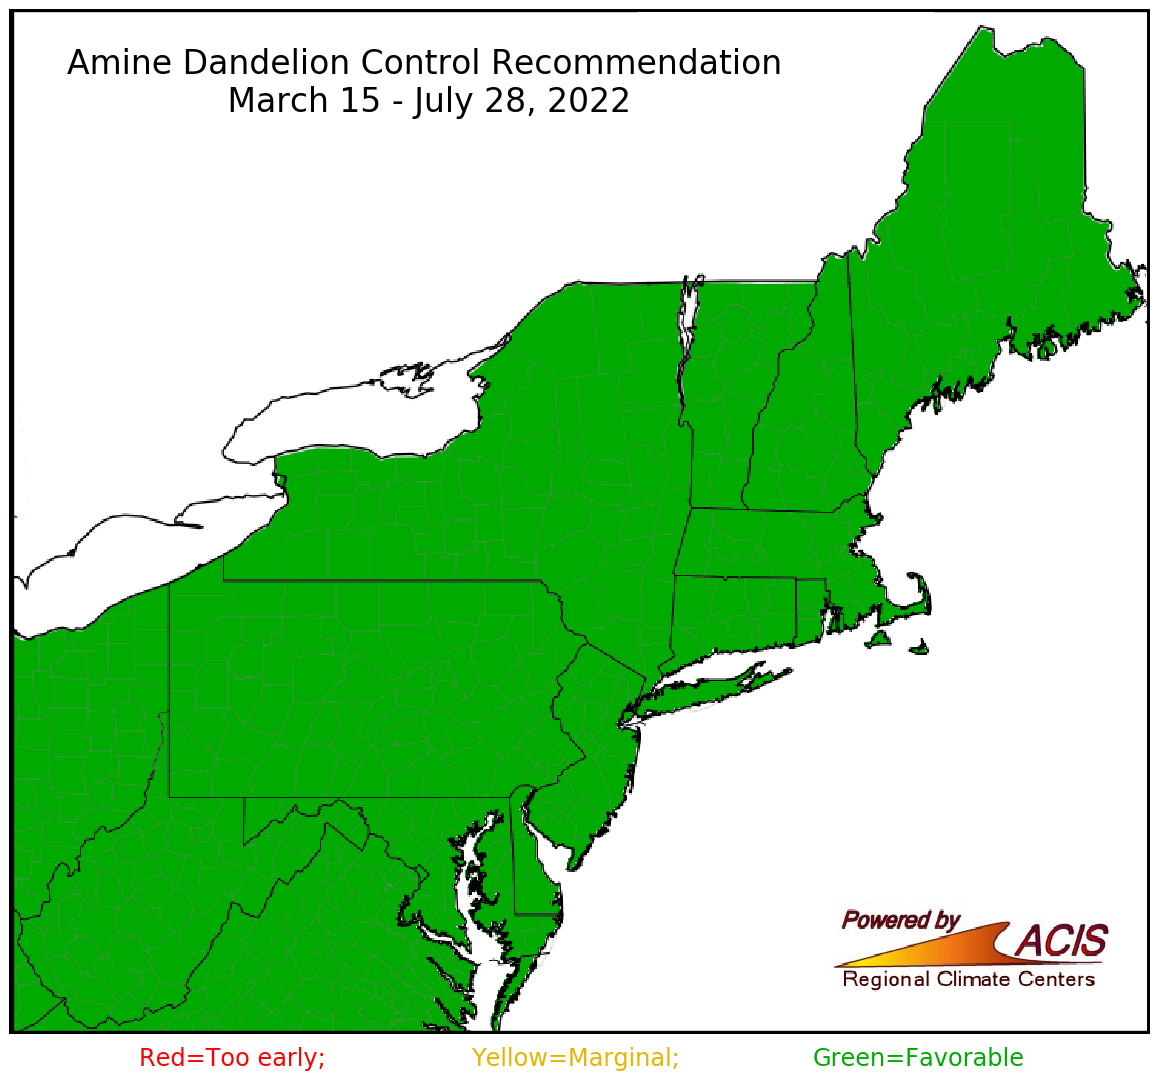 amine dandelion control recommendation